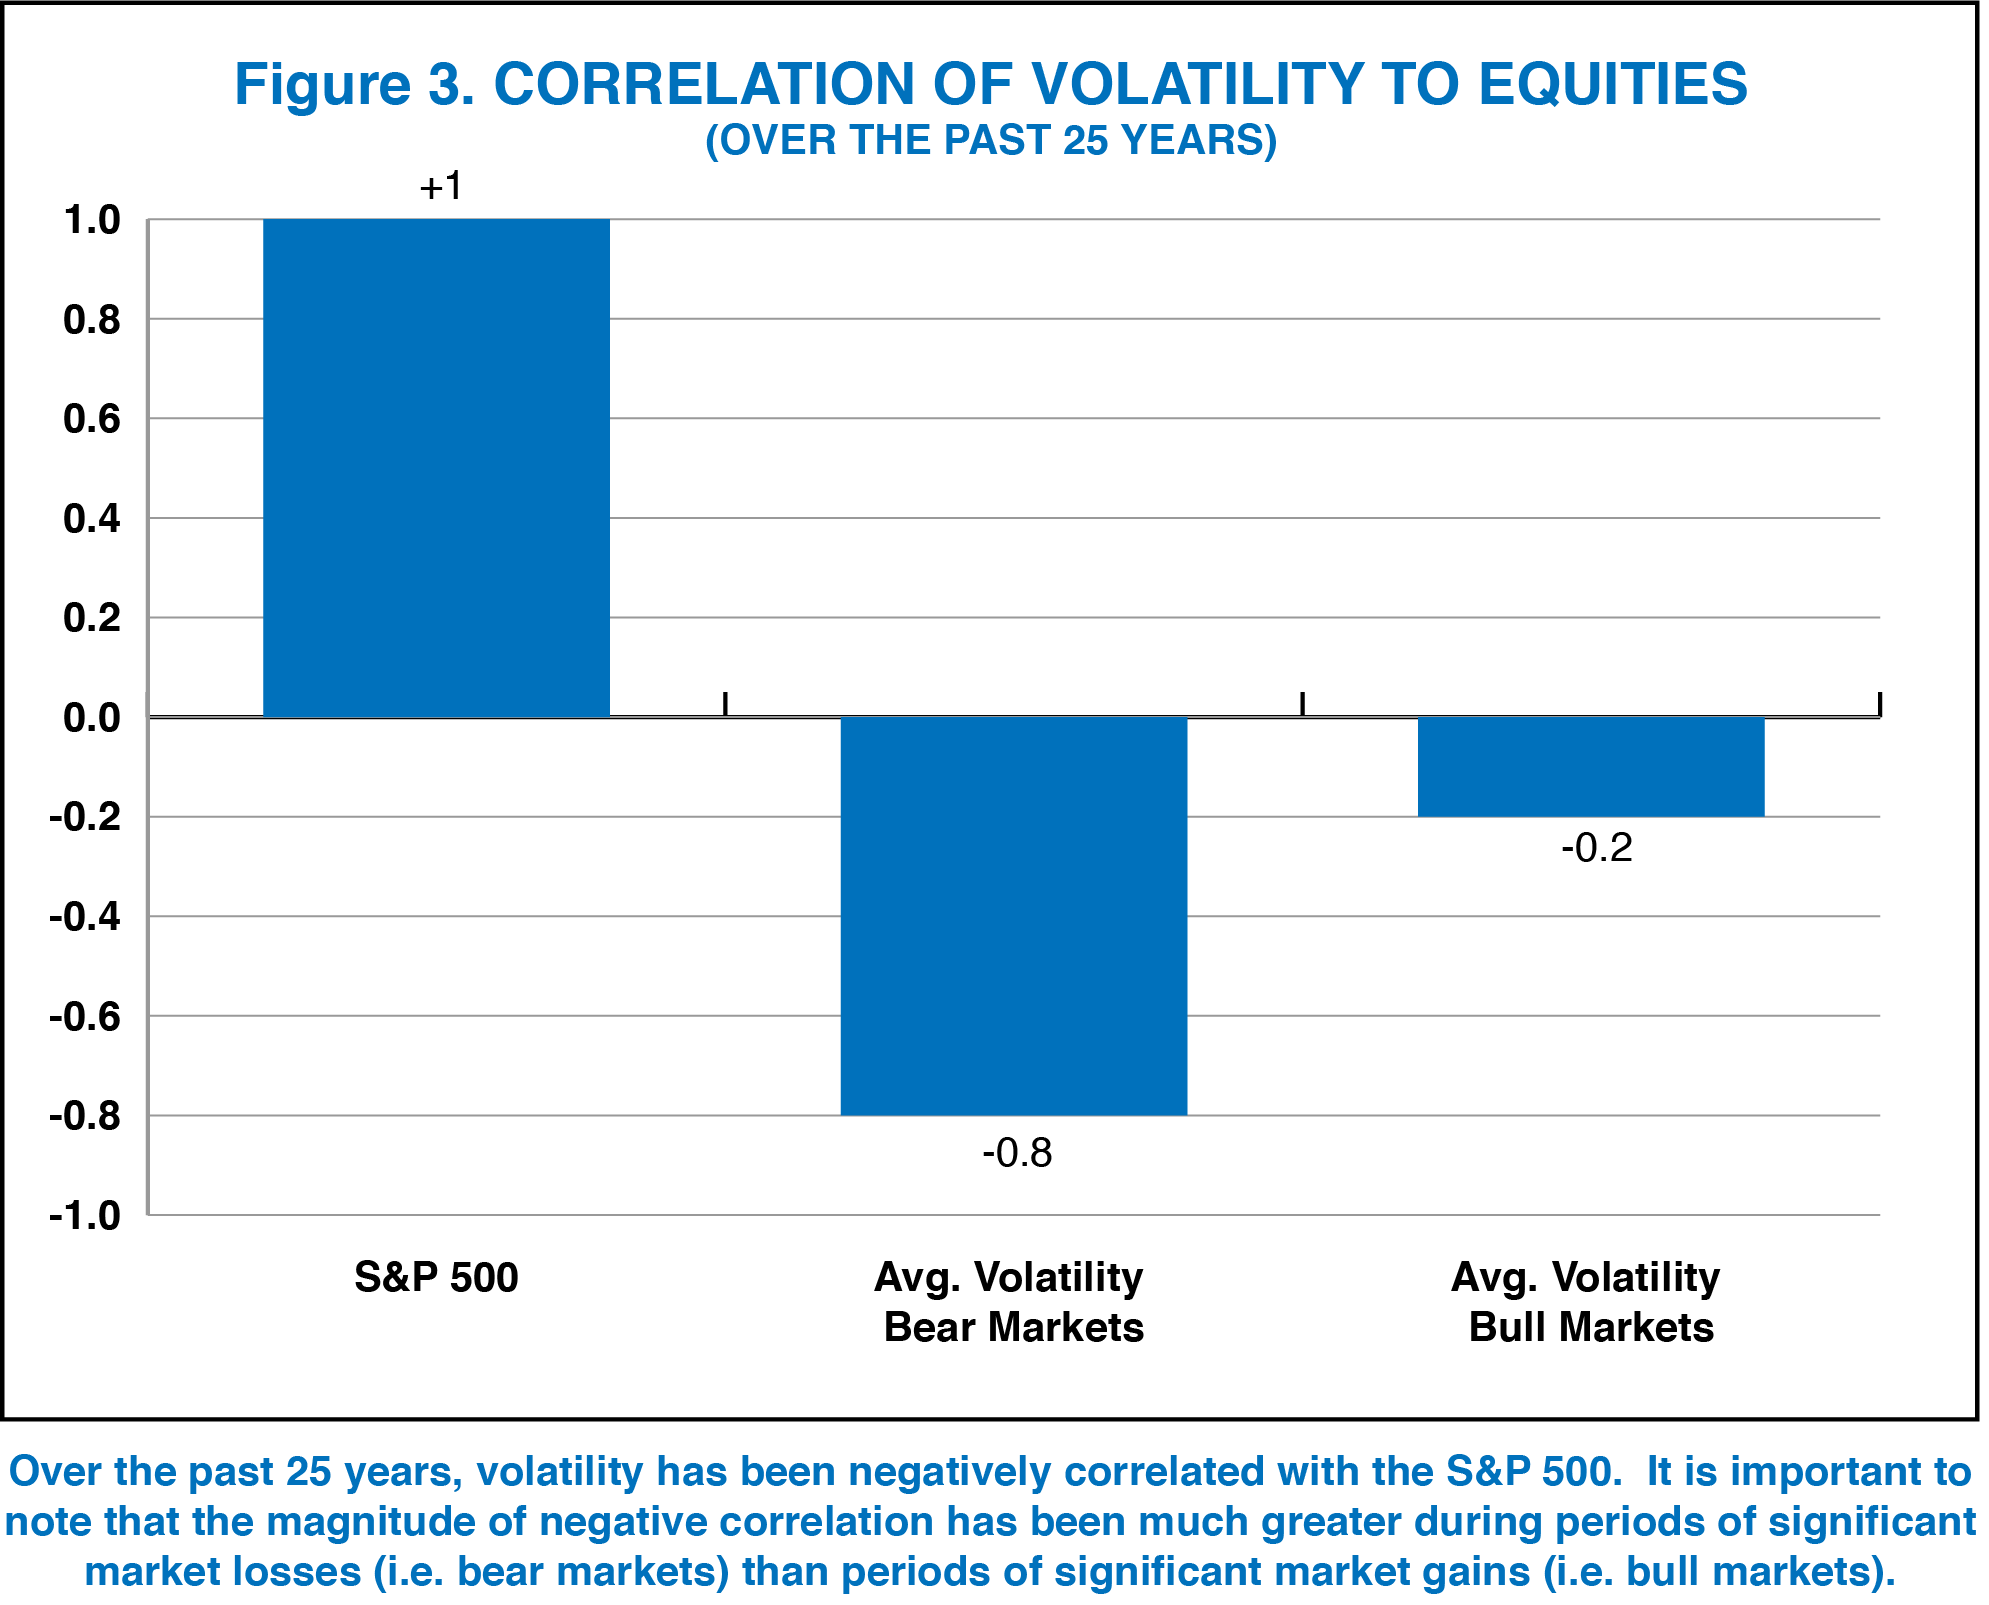 Chart_3_Correlation of vol to equities.png